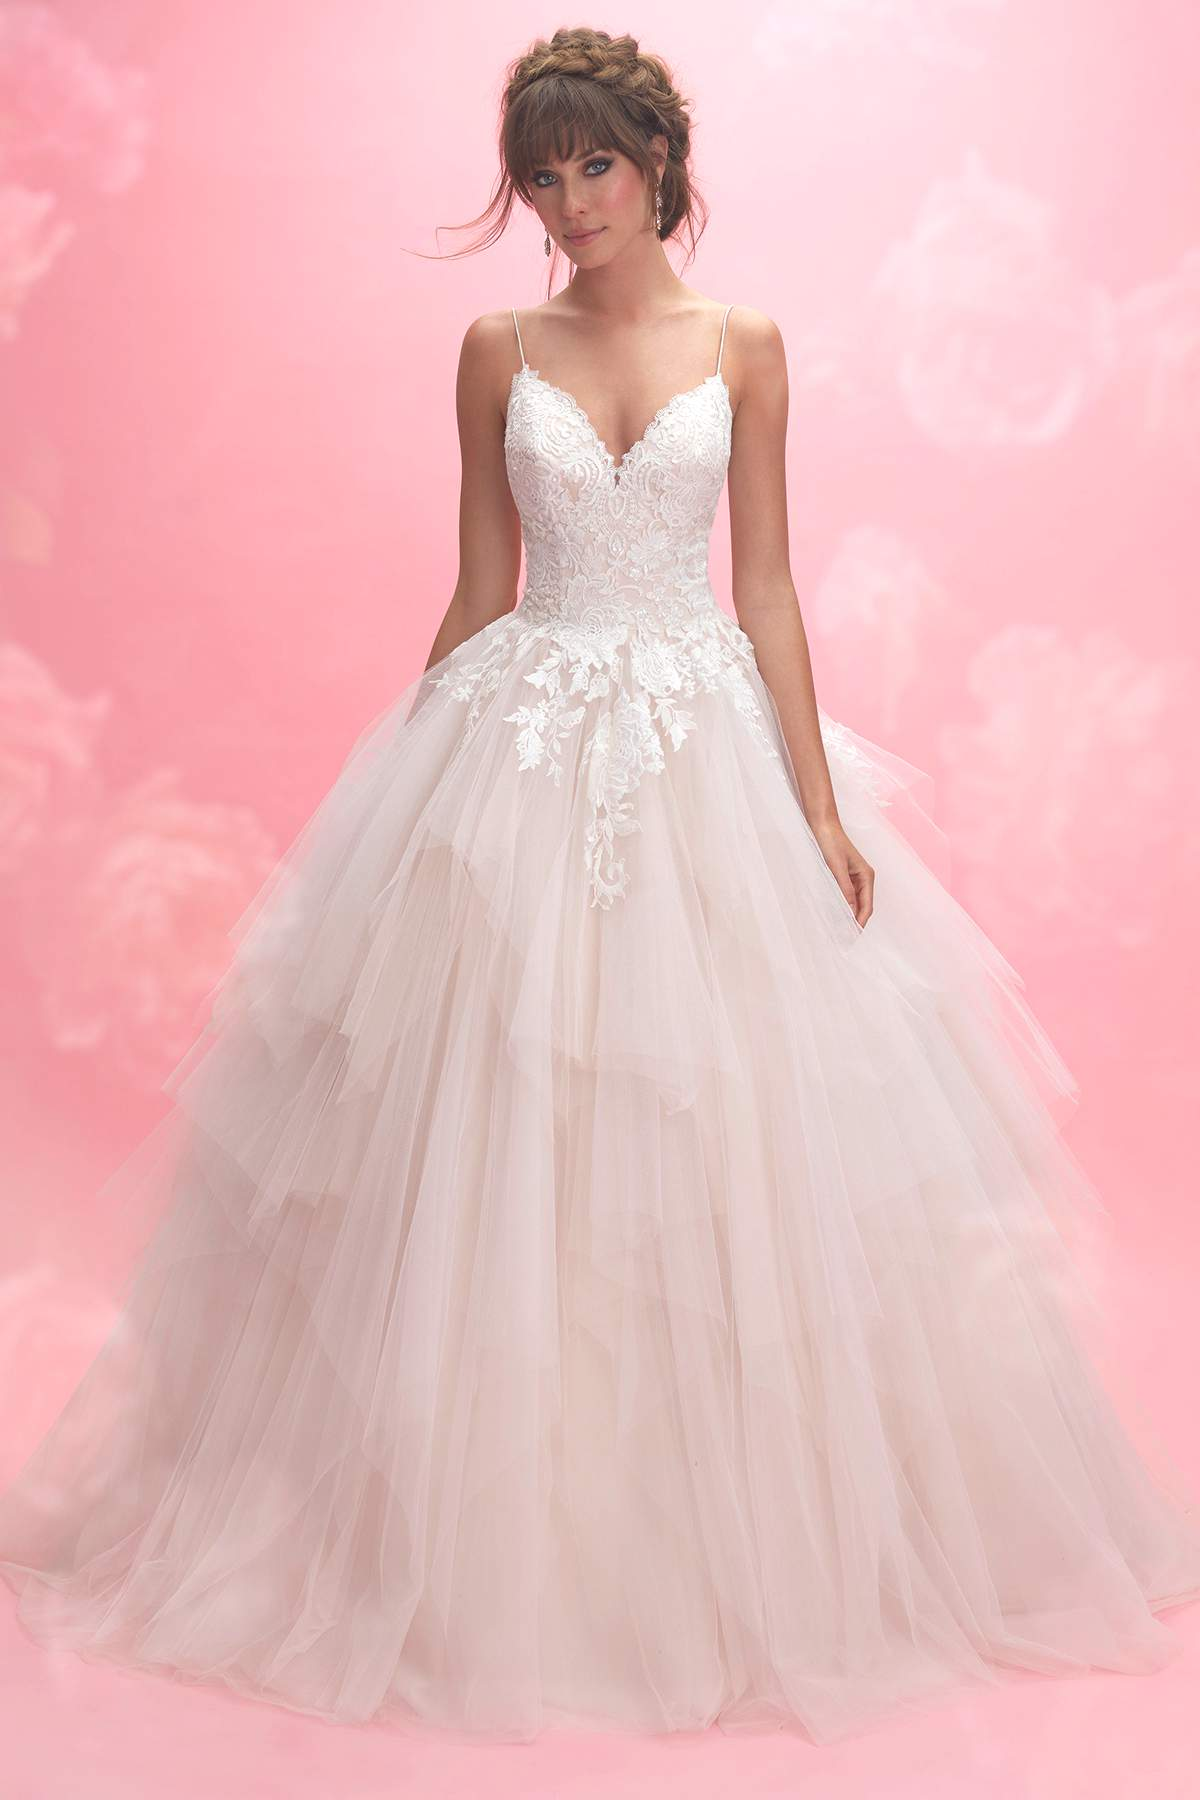 Style 3067 by Allure Romance - Find Your Dream Dress